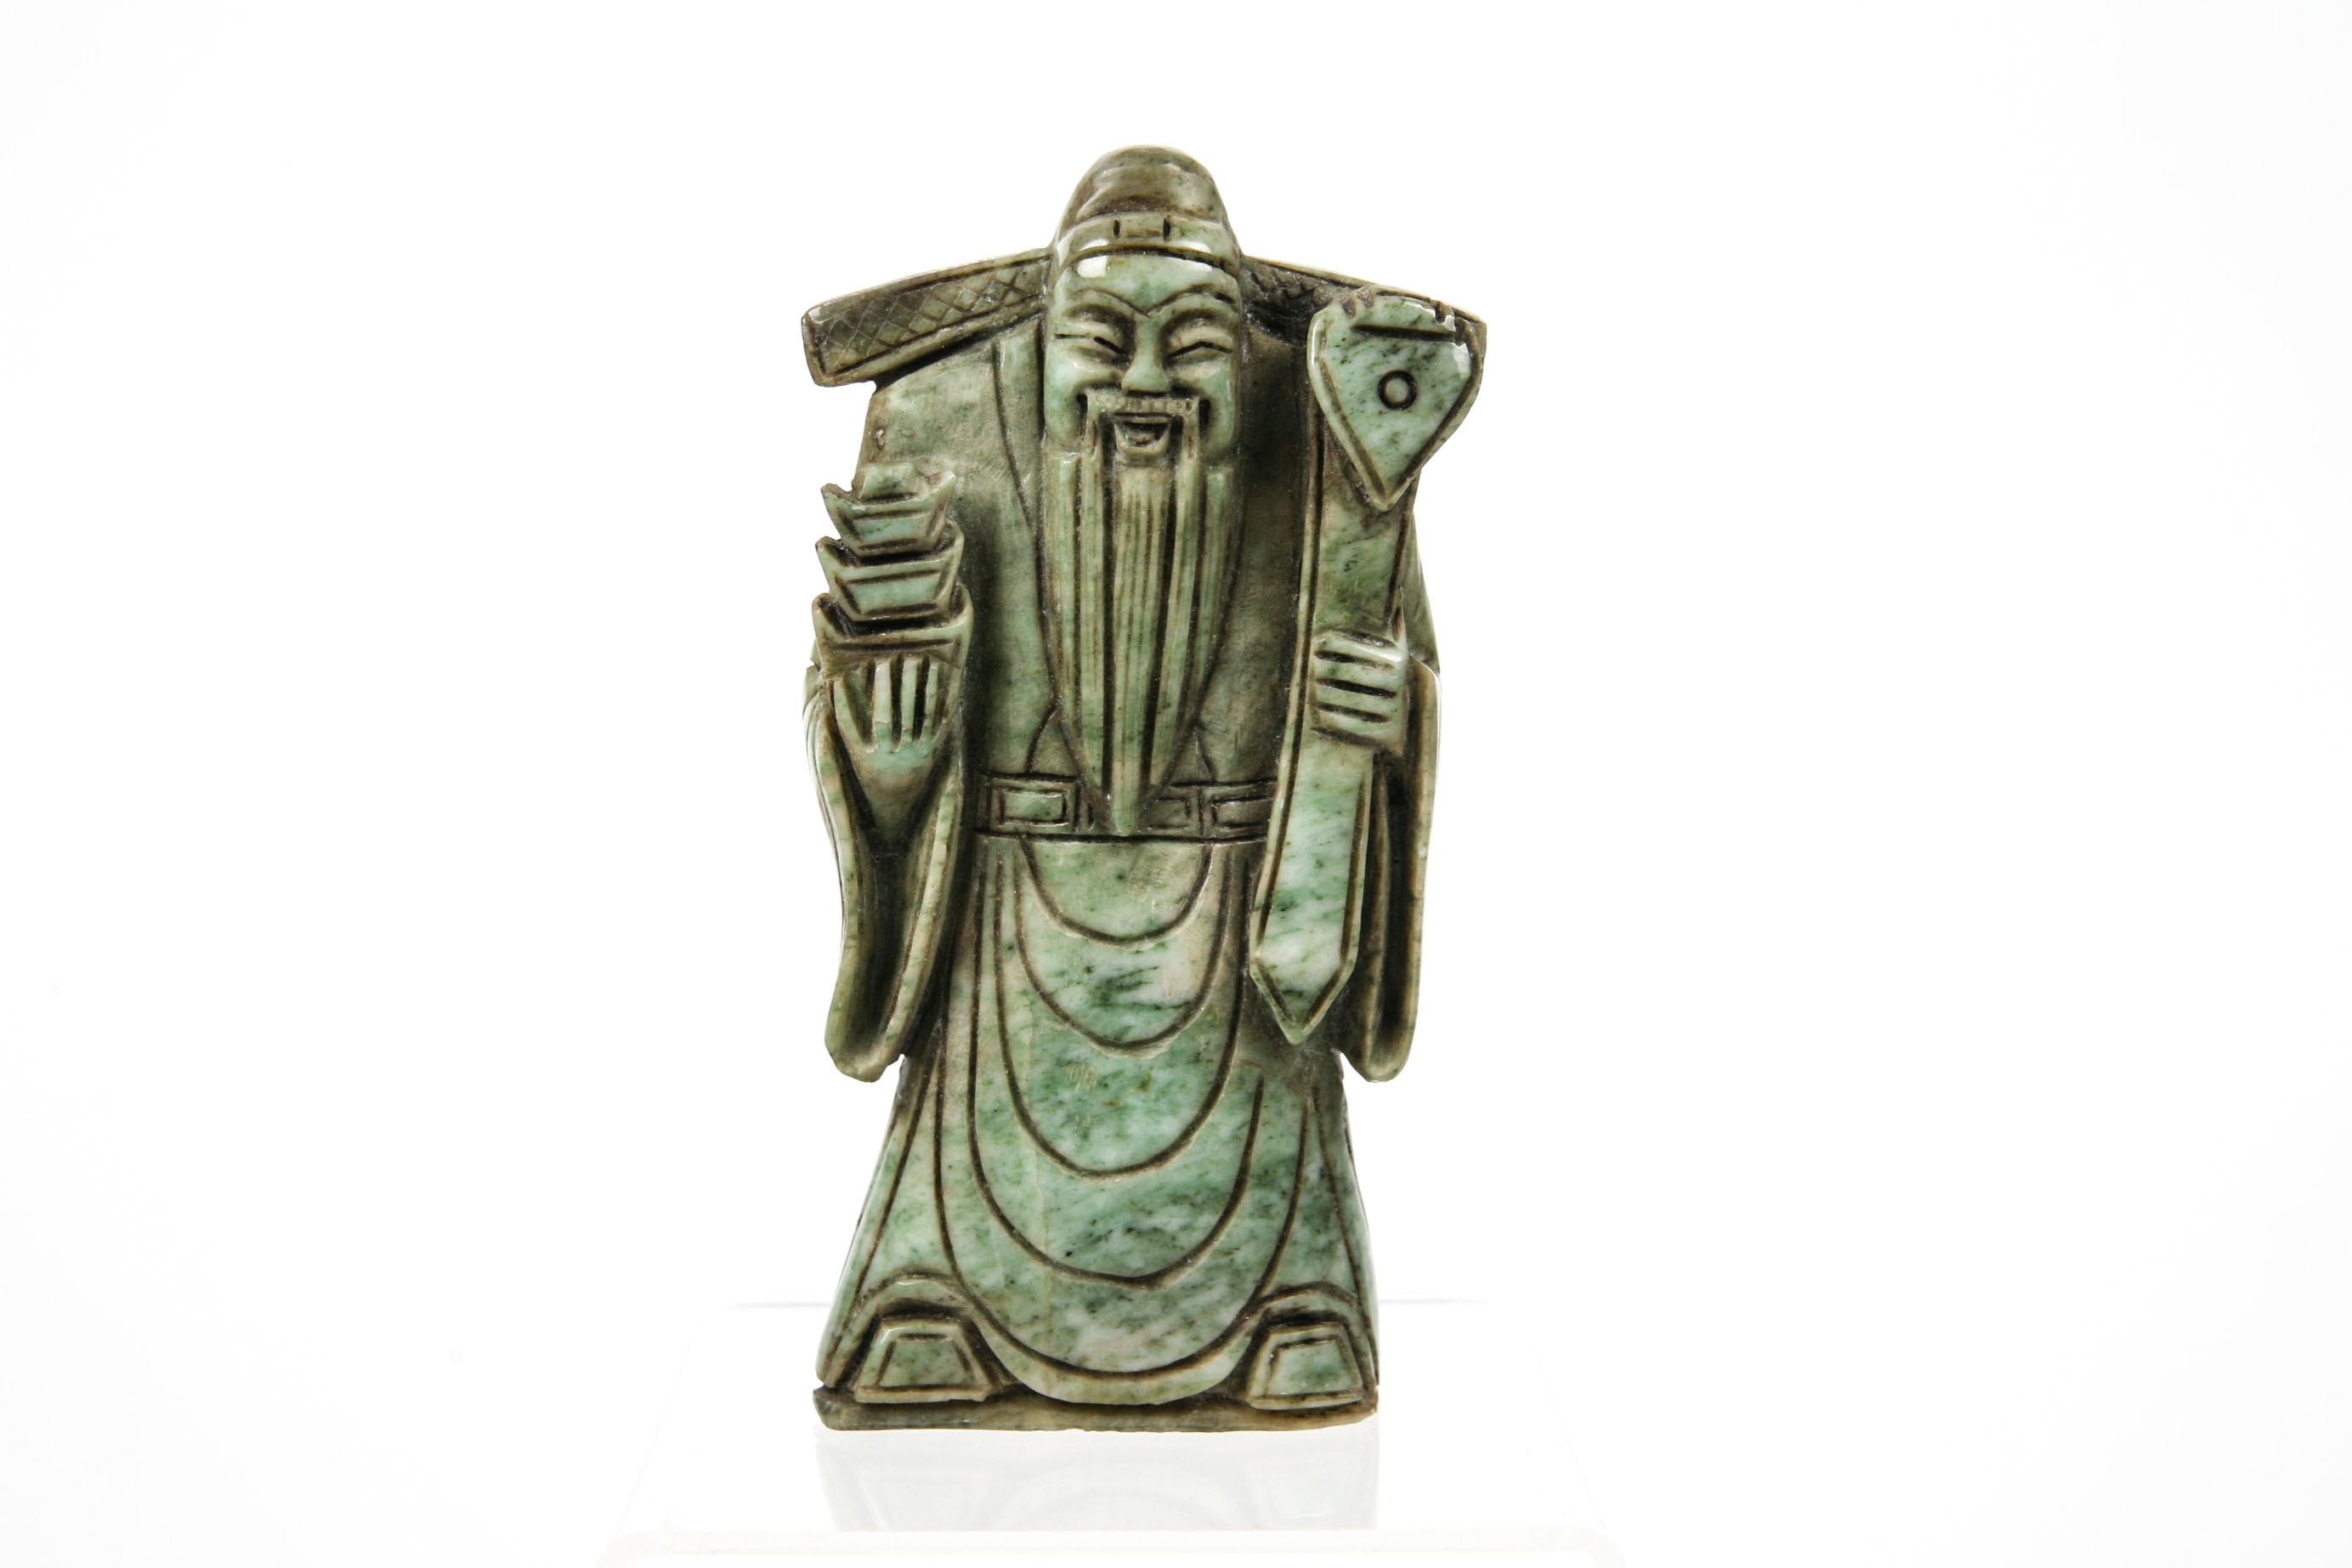 Chinese Nephrite Jade God of Wealth Figurine